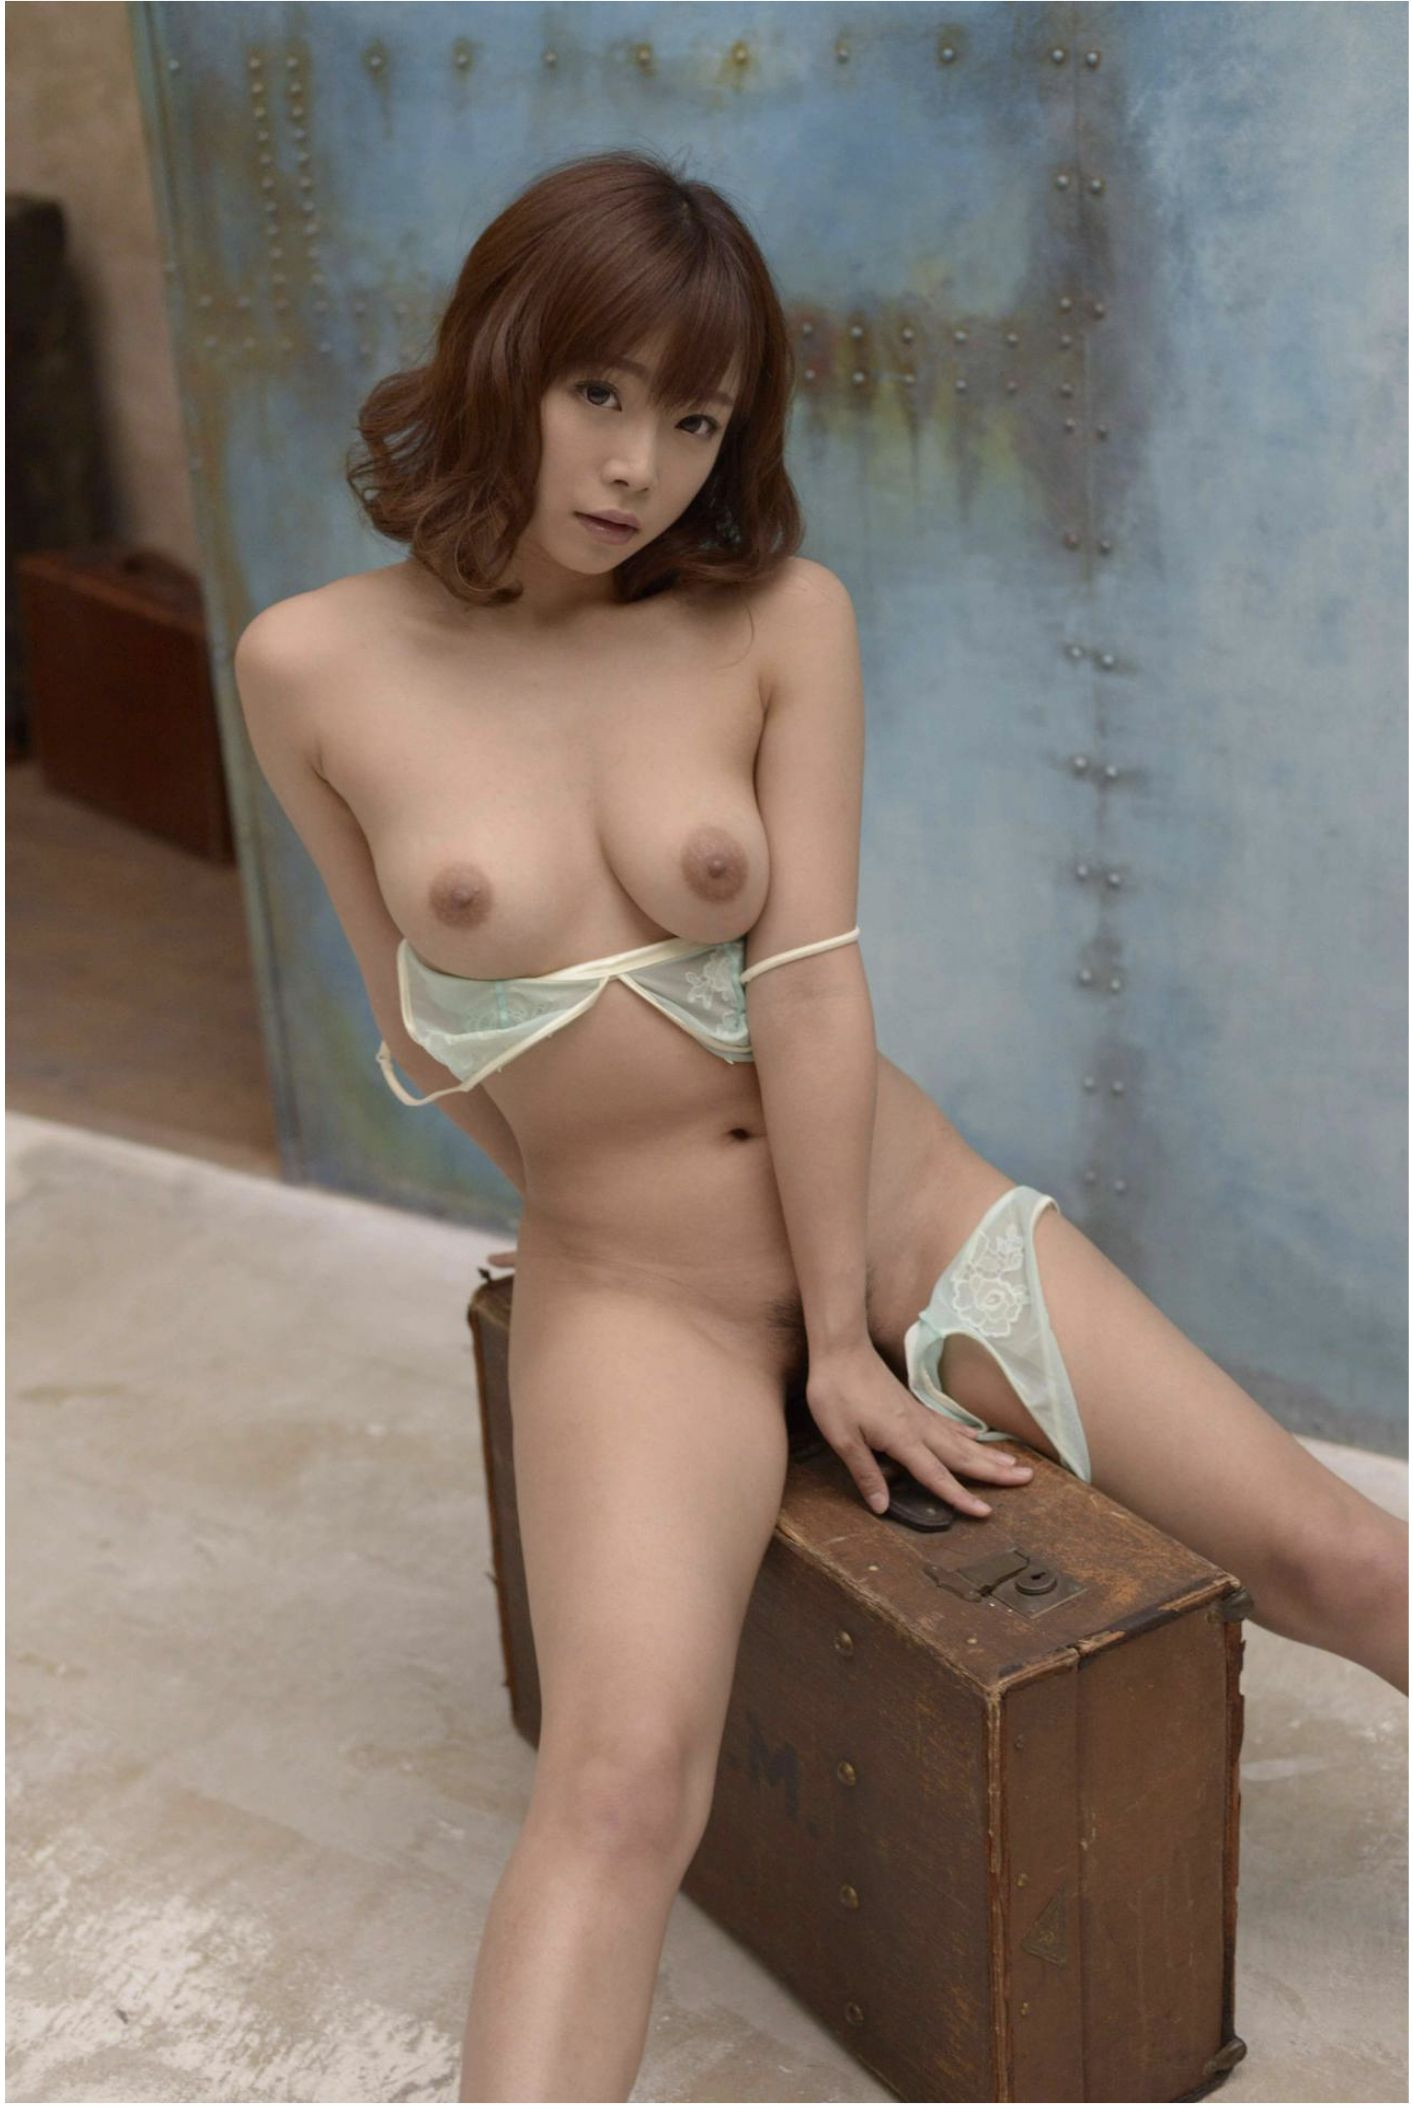 SOFT ON DEMAND GRAVURE COLLECTION 紗倉まな04 photo 104